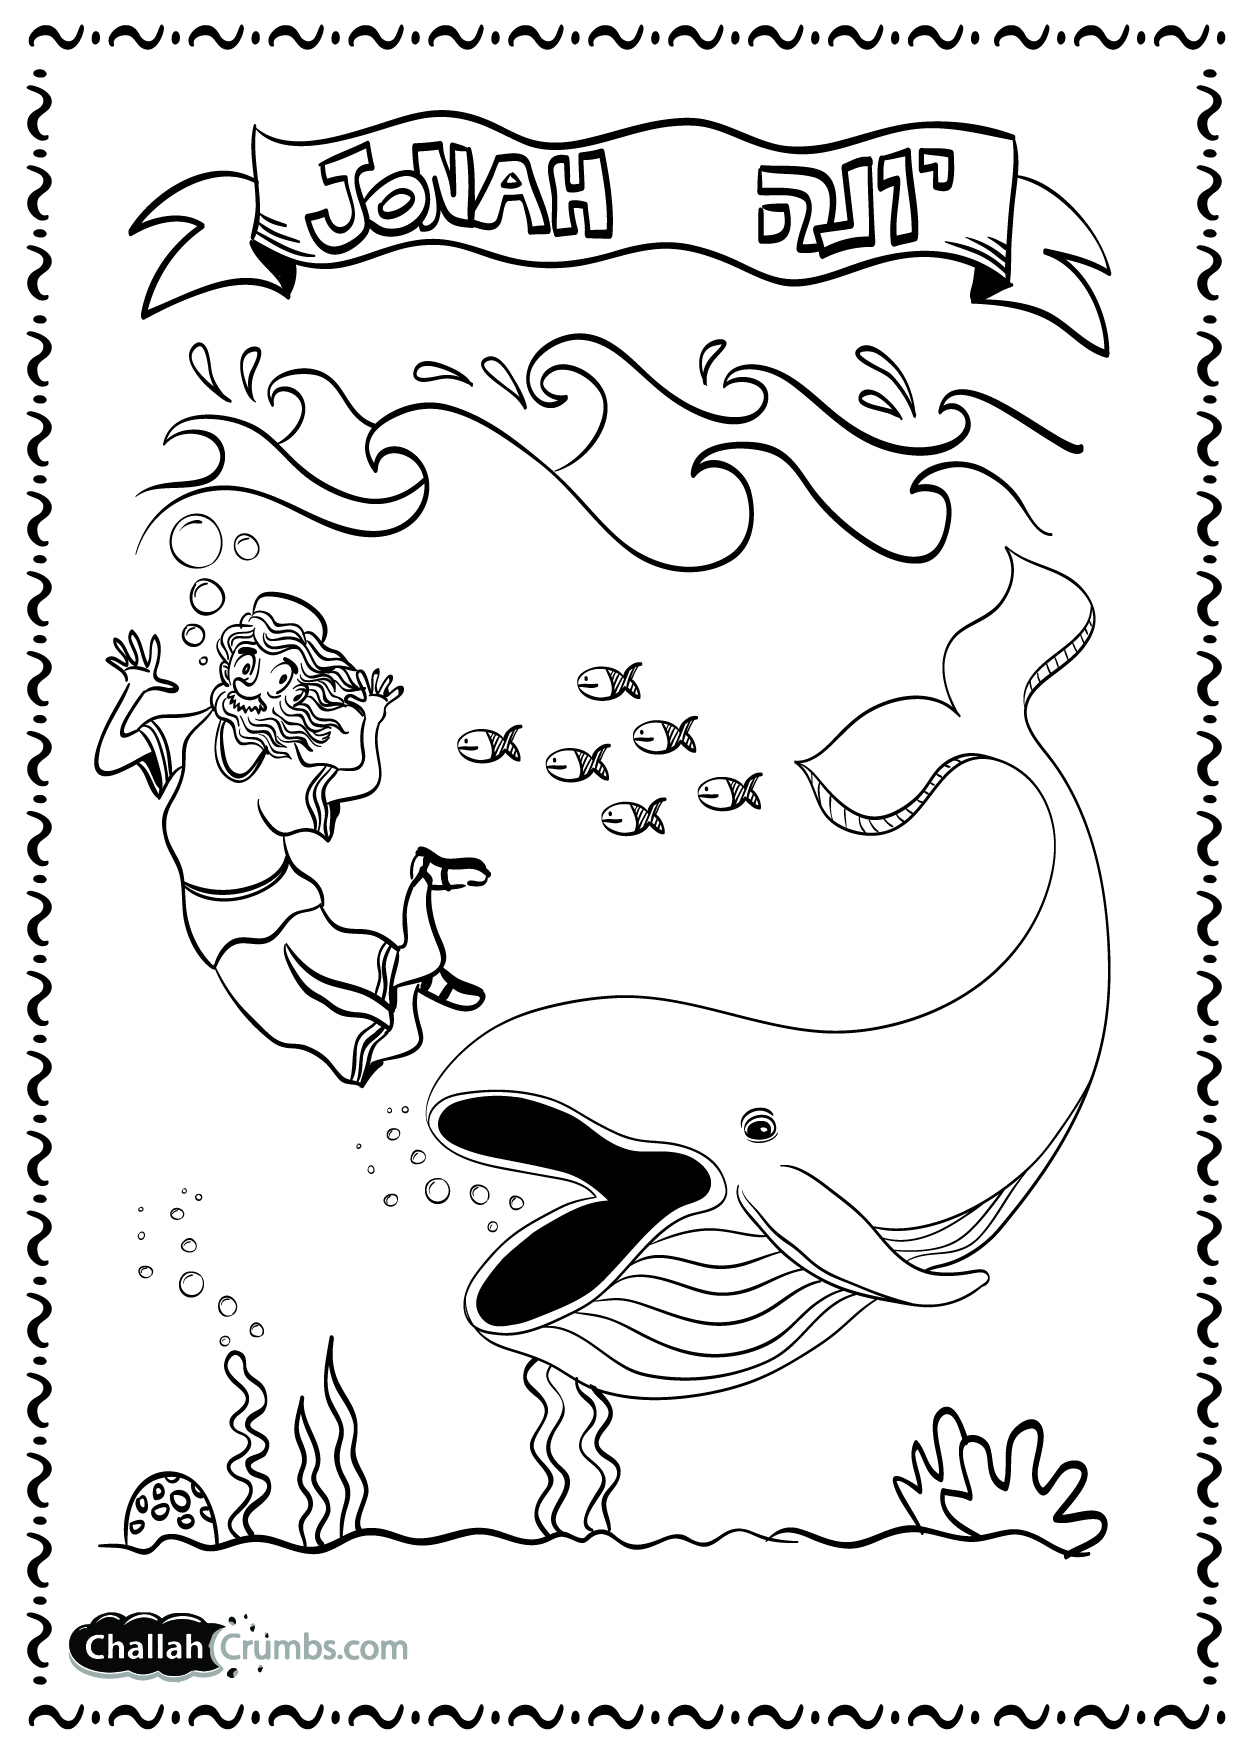 Coloring Page Yom Kippur Click On Picture To Print Challah Crumbs